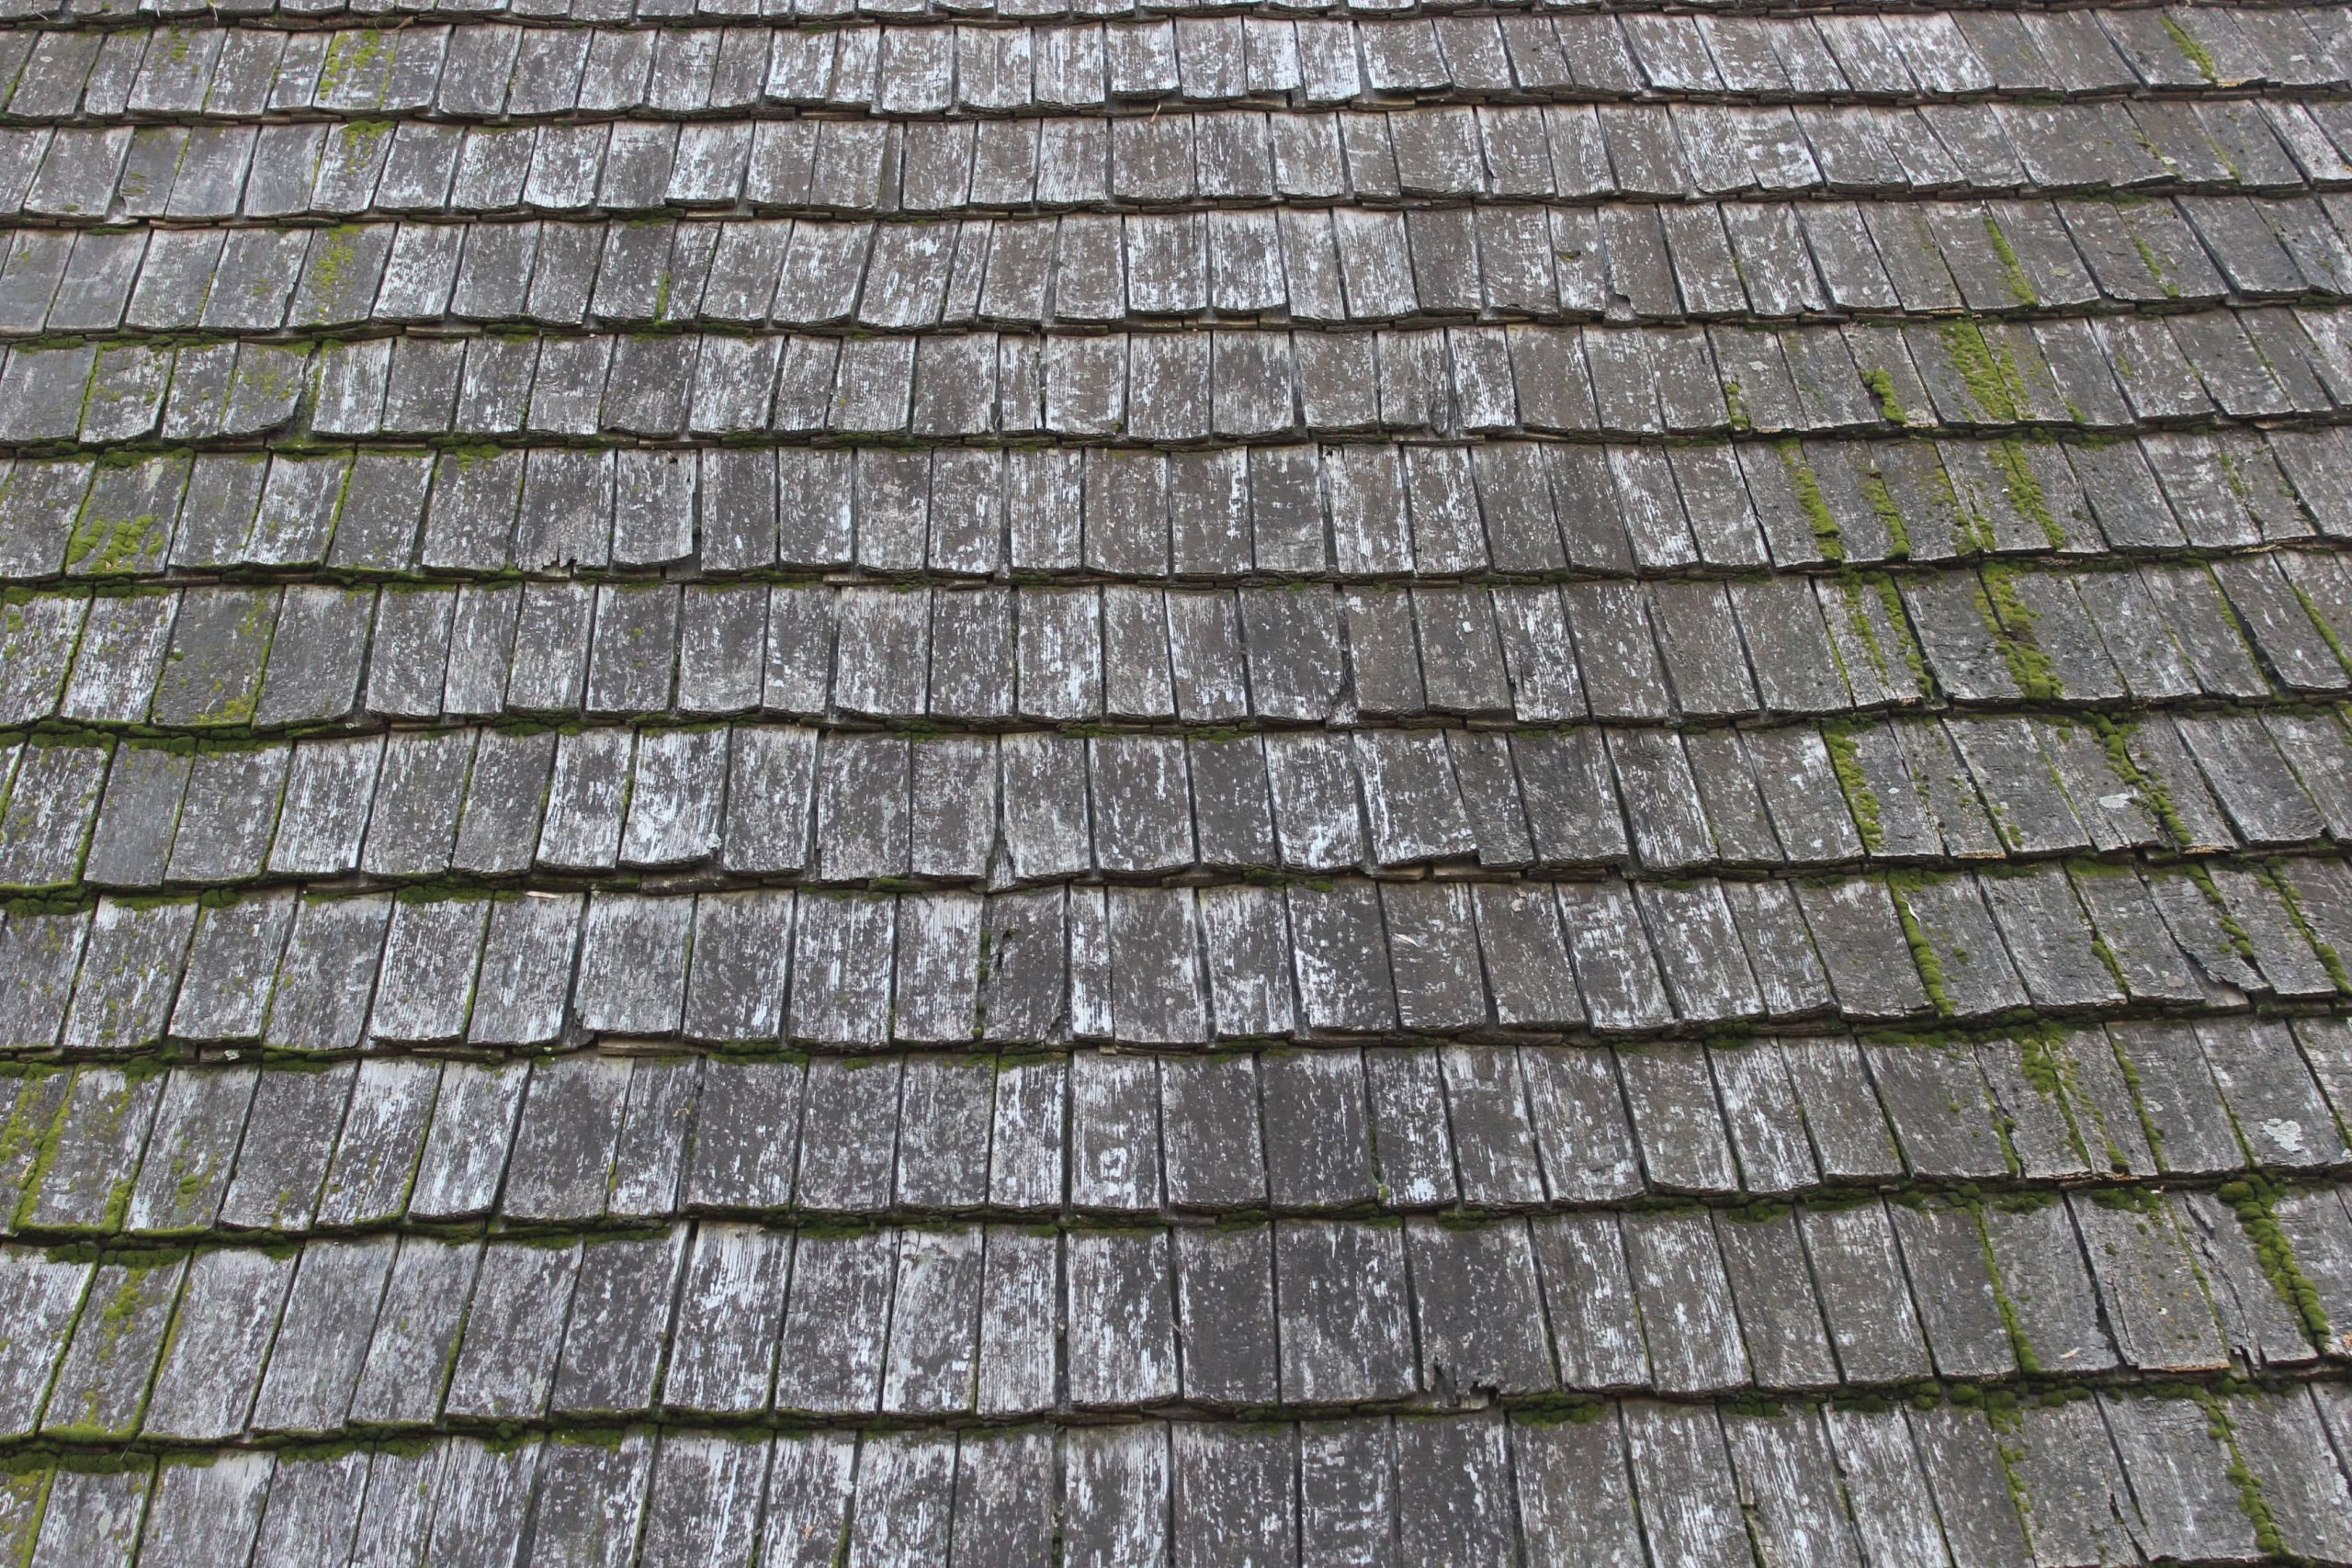 Deteriorated roof shingles scaled